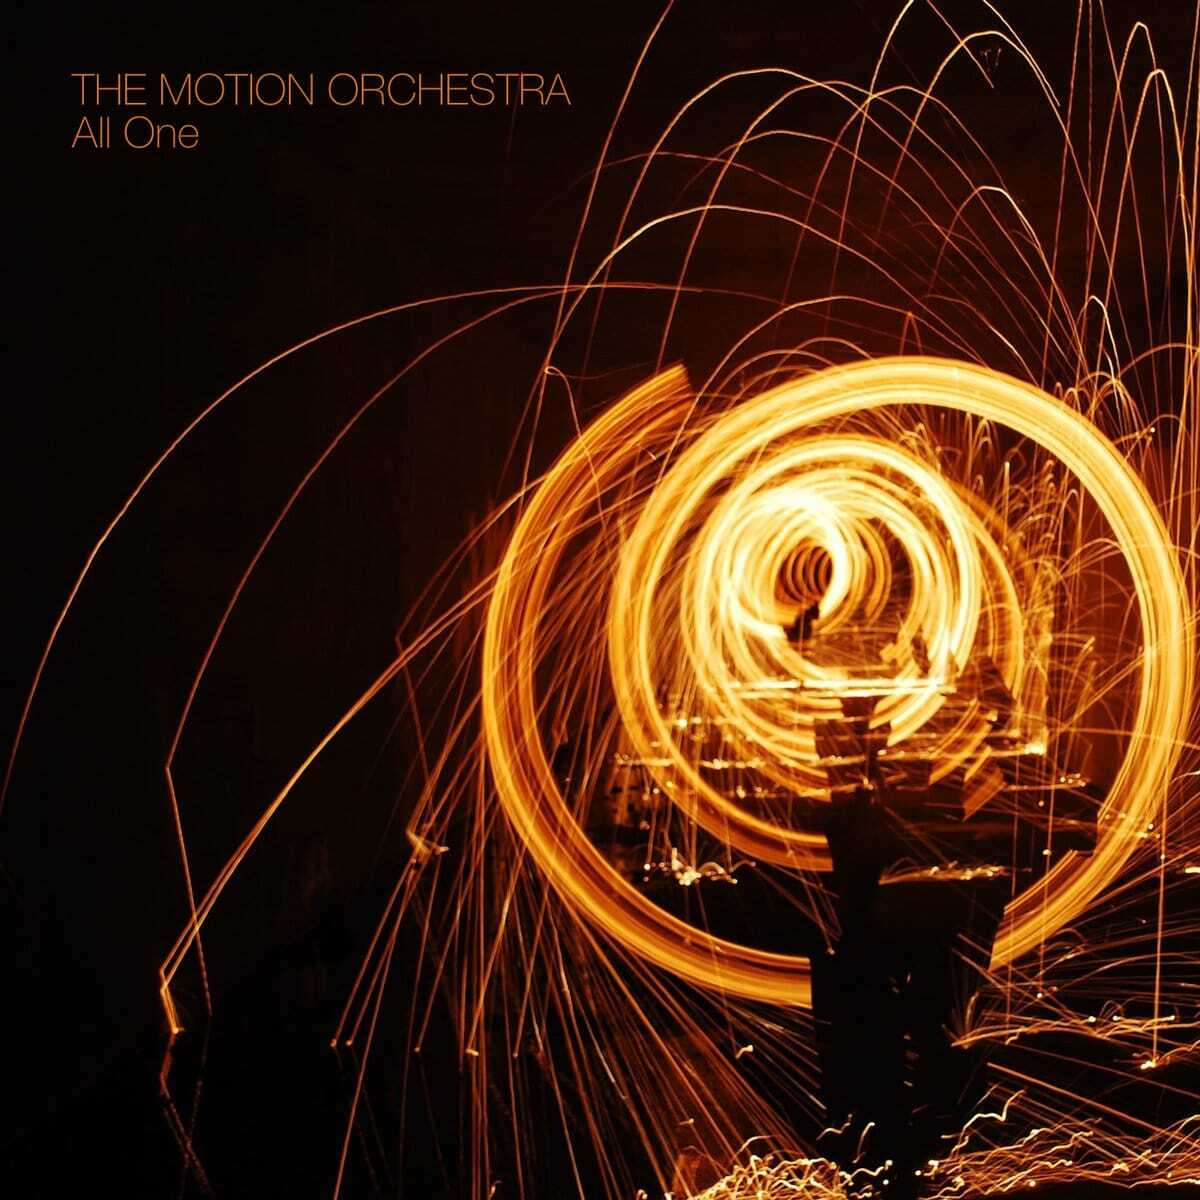 The Motion Orchestra - All One